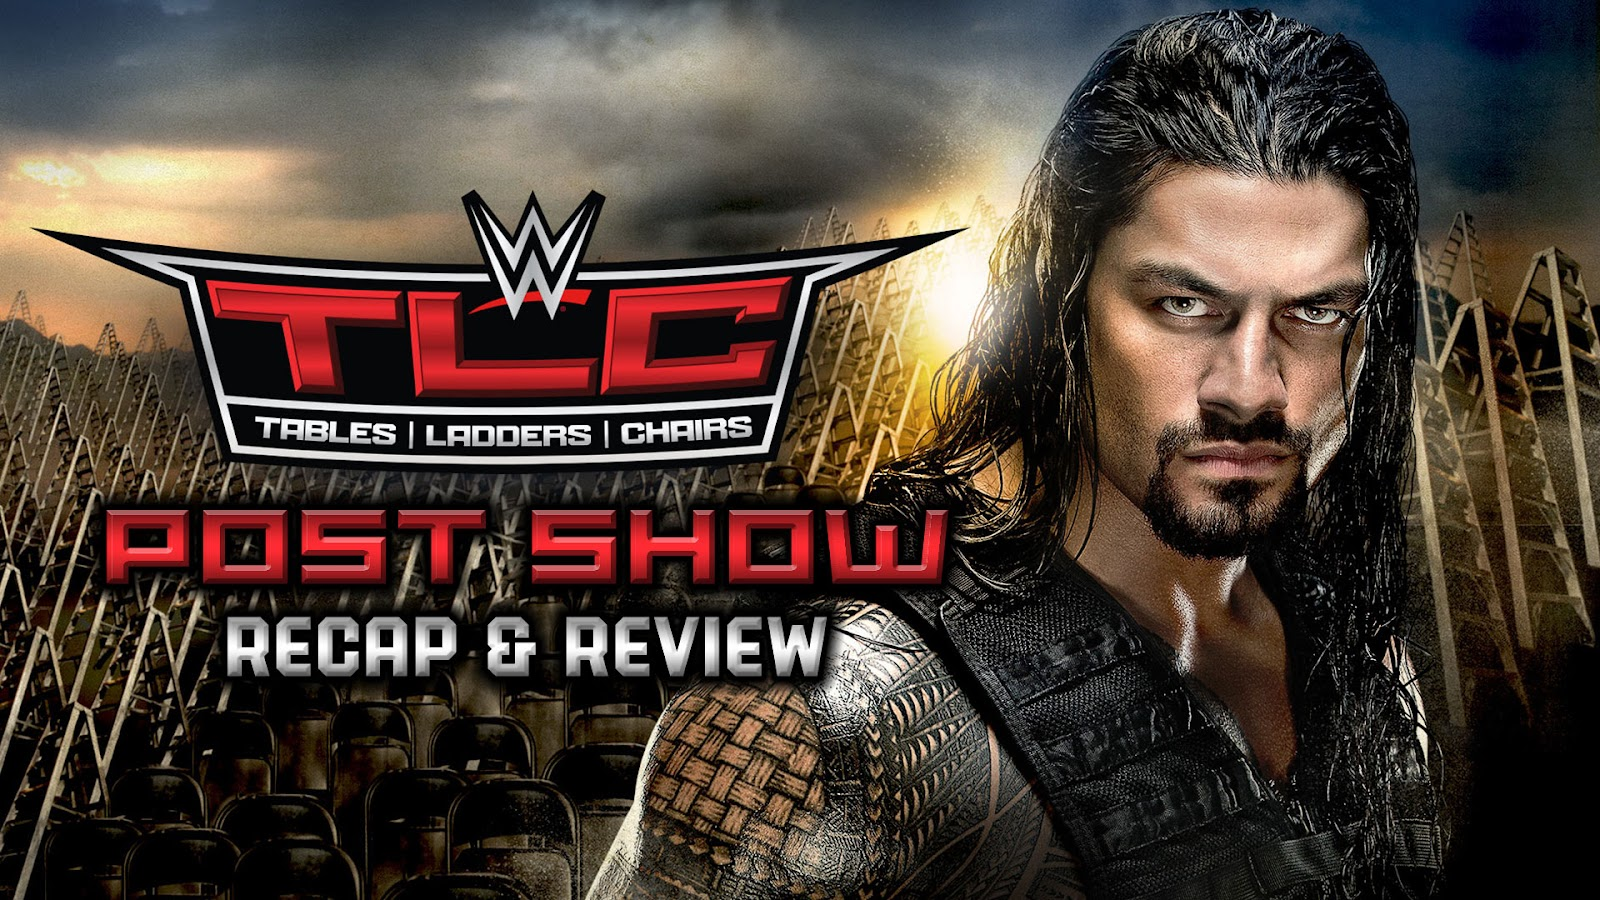 WWE TLC 2015 Recap and Review Podcast